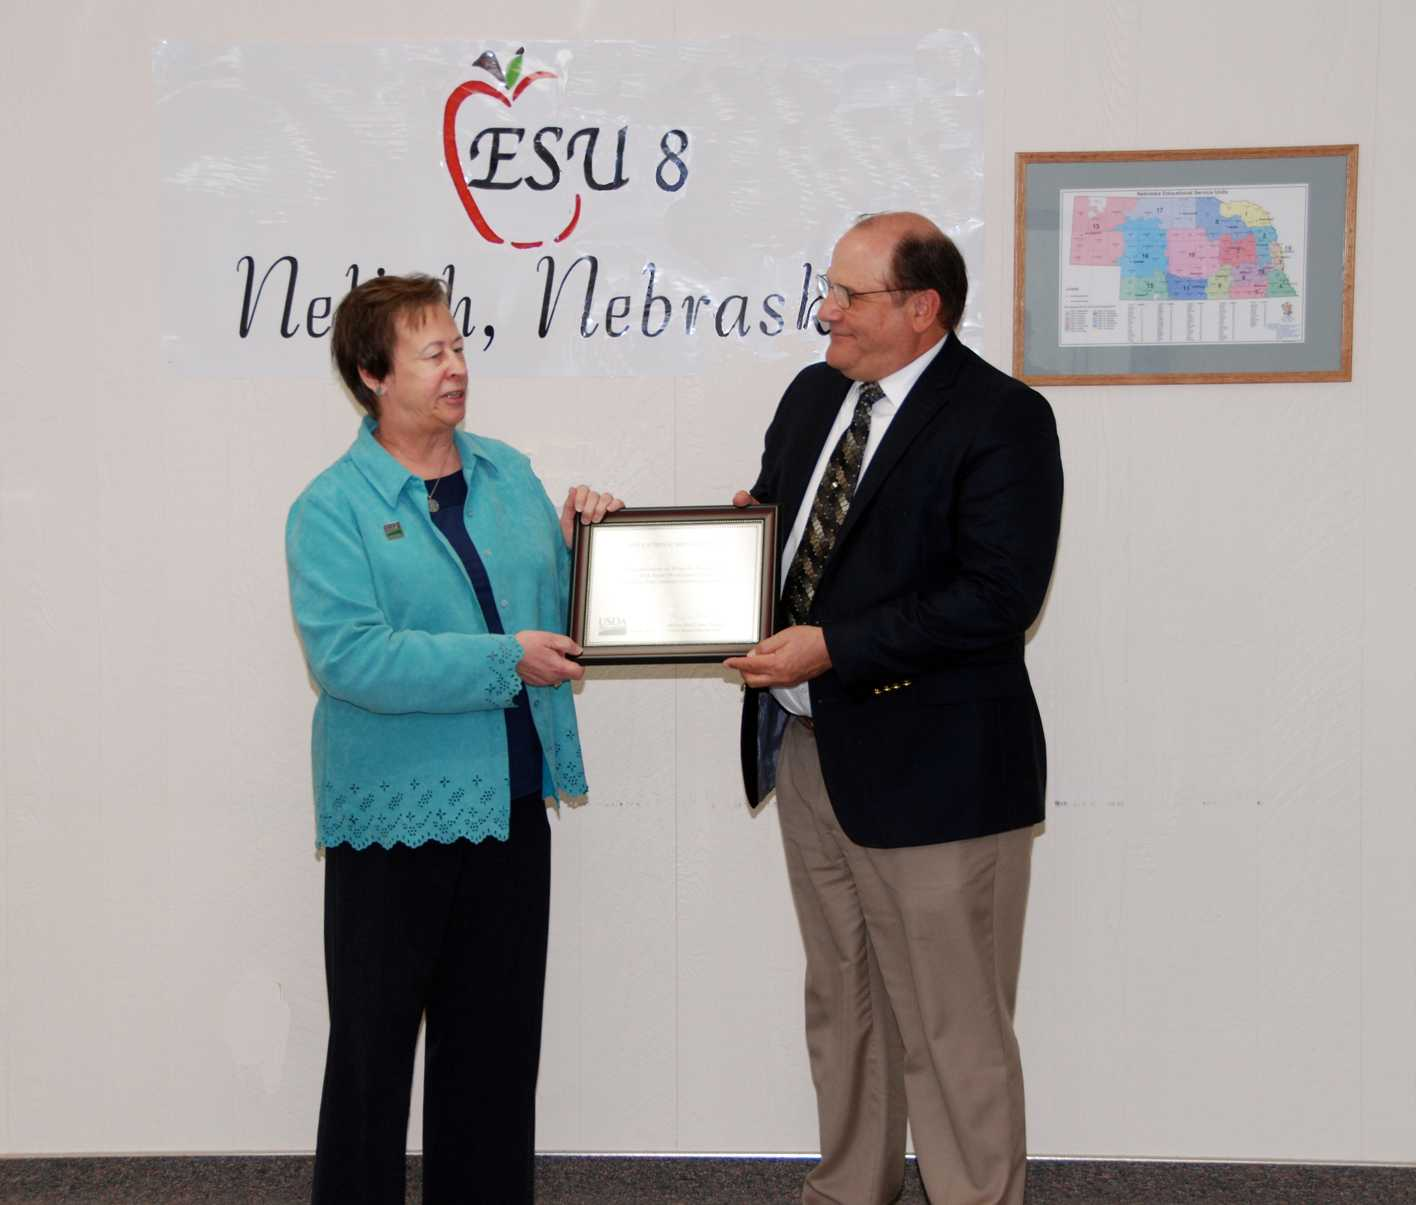 Maxine Moul, USDA Rural Development Nebraska state director, presents a certificate to Bill Mowinkel, administrator of ESU #8, recognizing a $287,442 grant to update ESU #8s distance learning equipment to connect 30 schools with Northeast Community College. It is part of $1.2 million in funding awarded to several ESUs in the state. (Courtesy Photo)